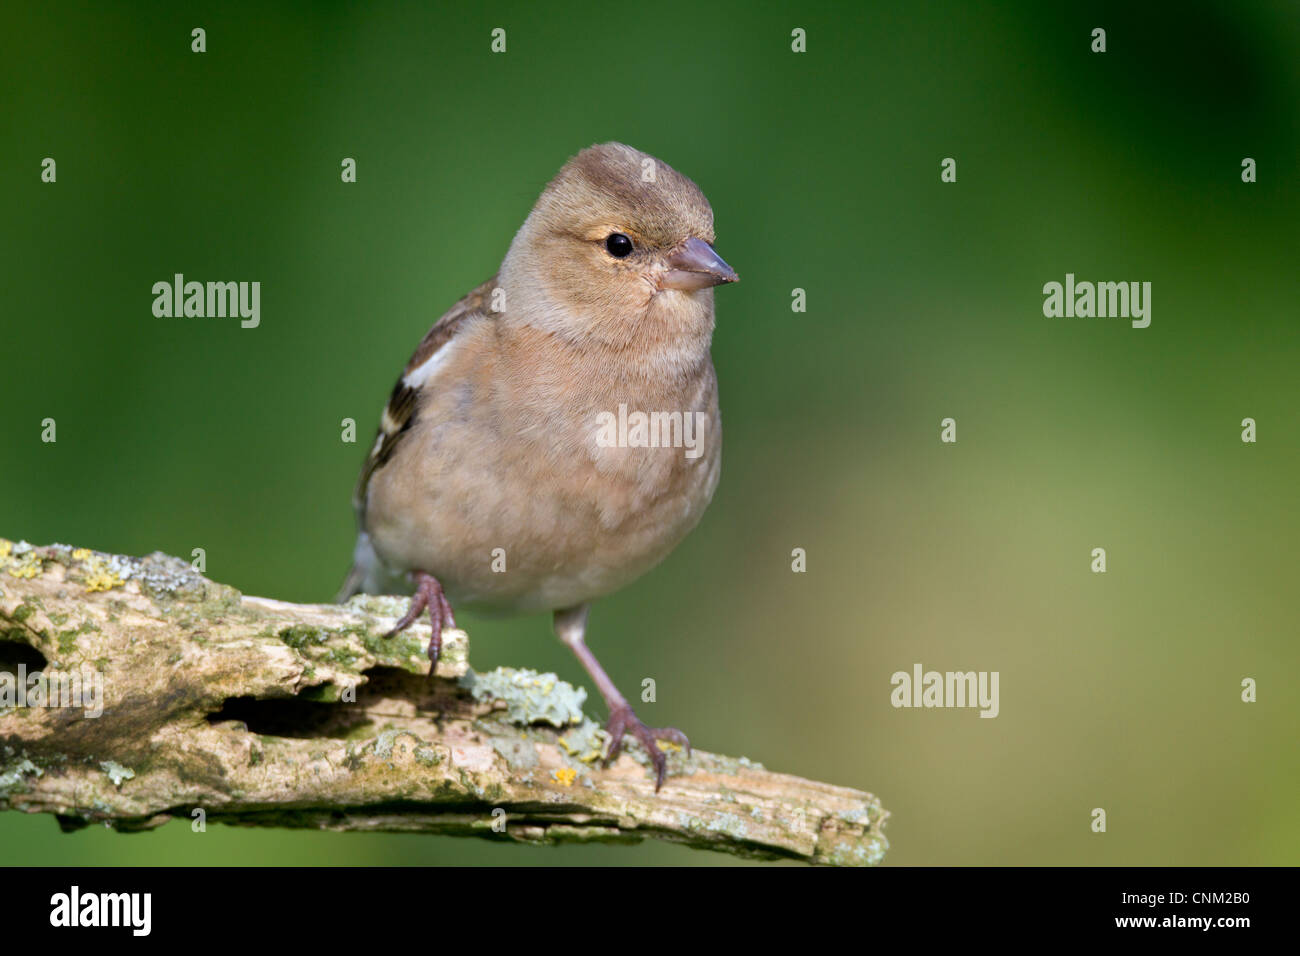 Chaffinch; Fringilla coelebs; female; UK - Stock Image